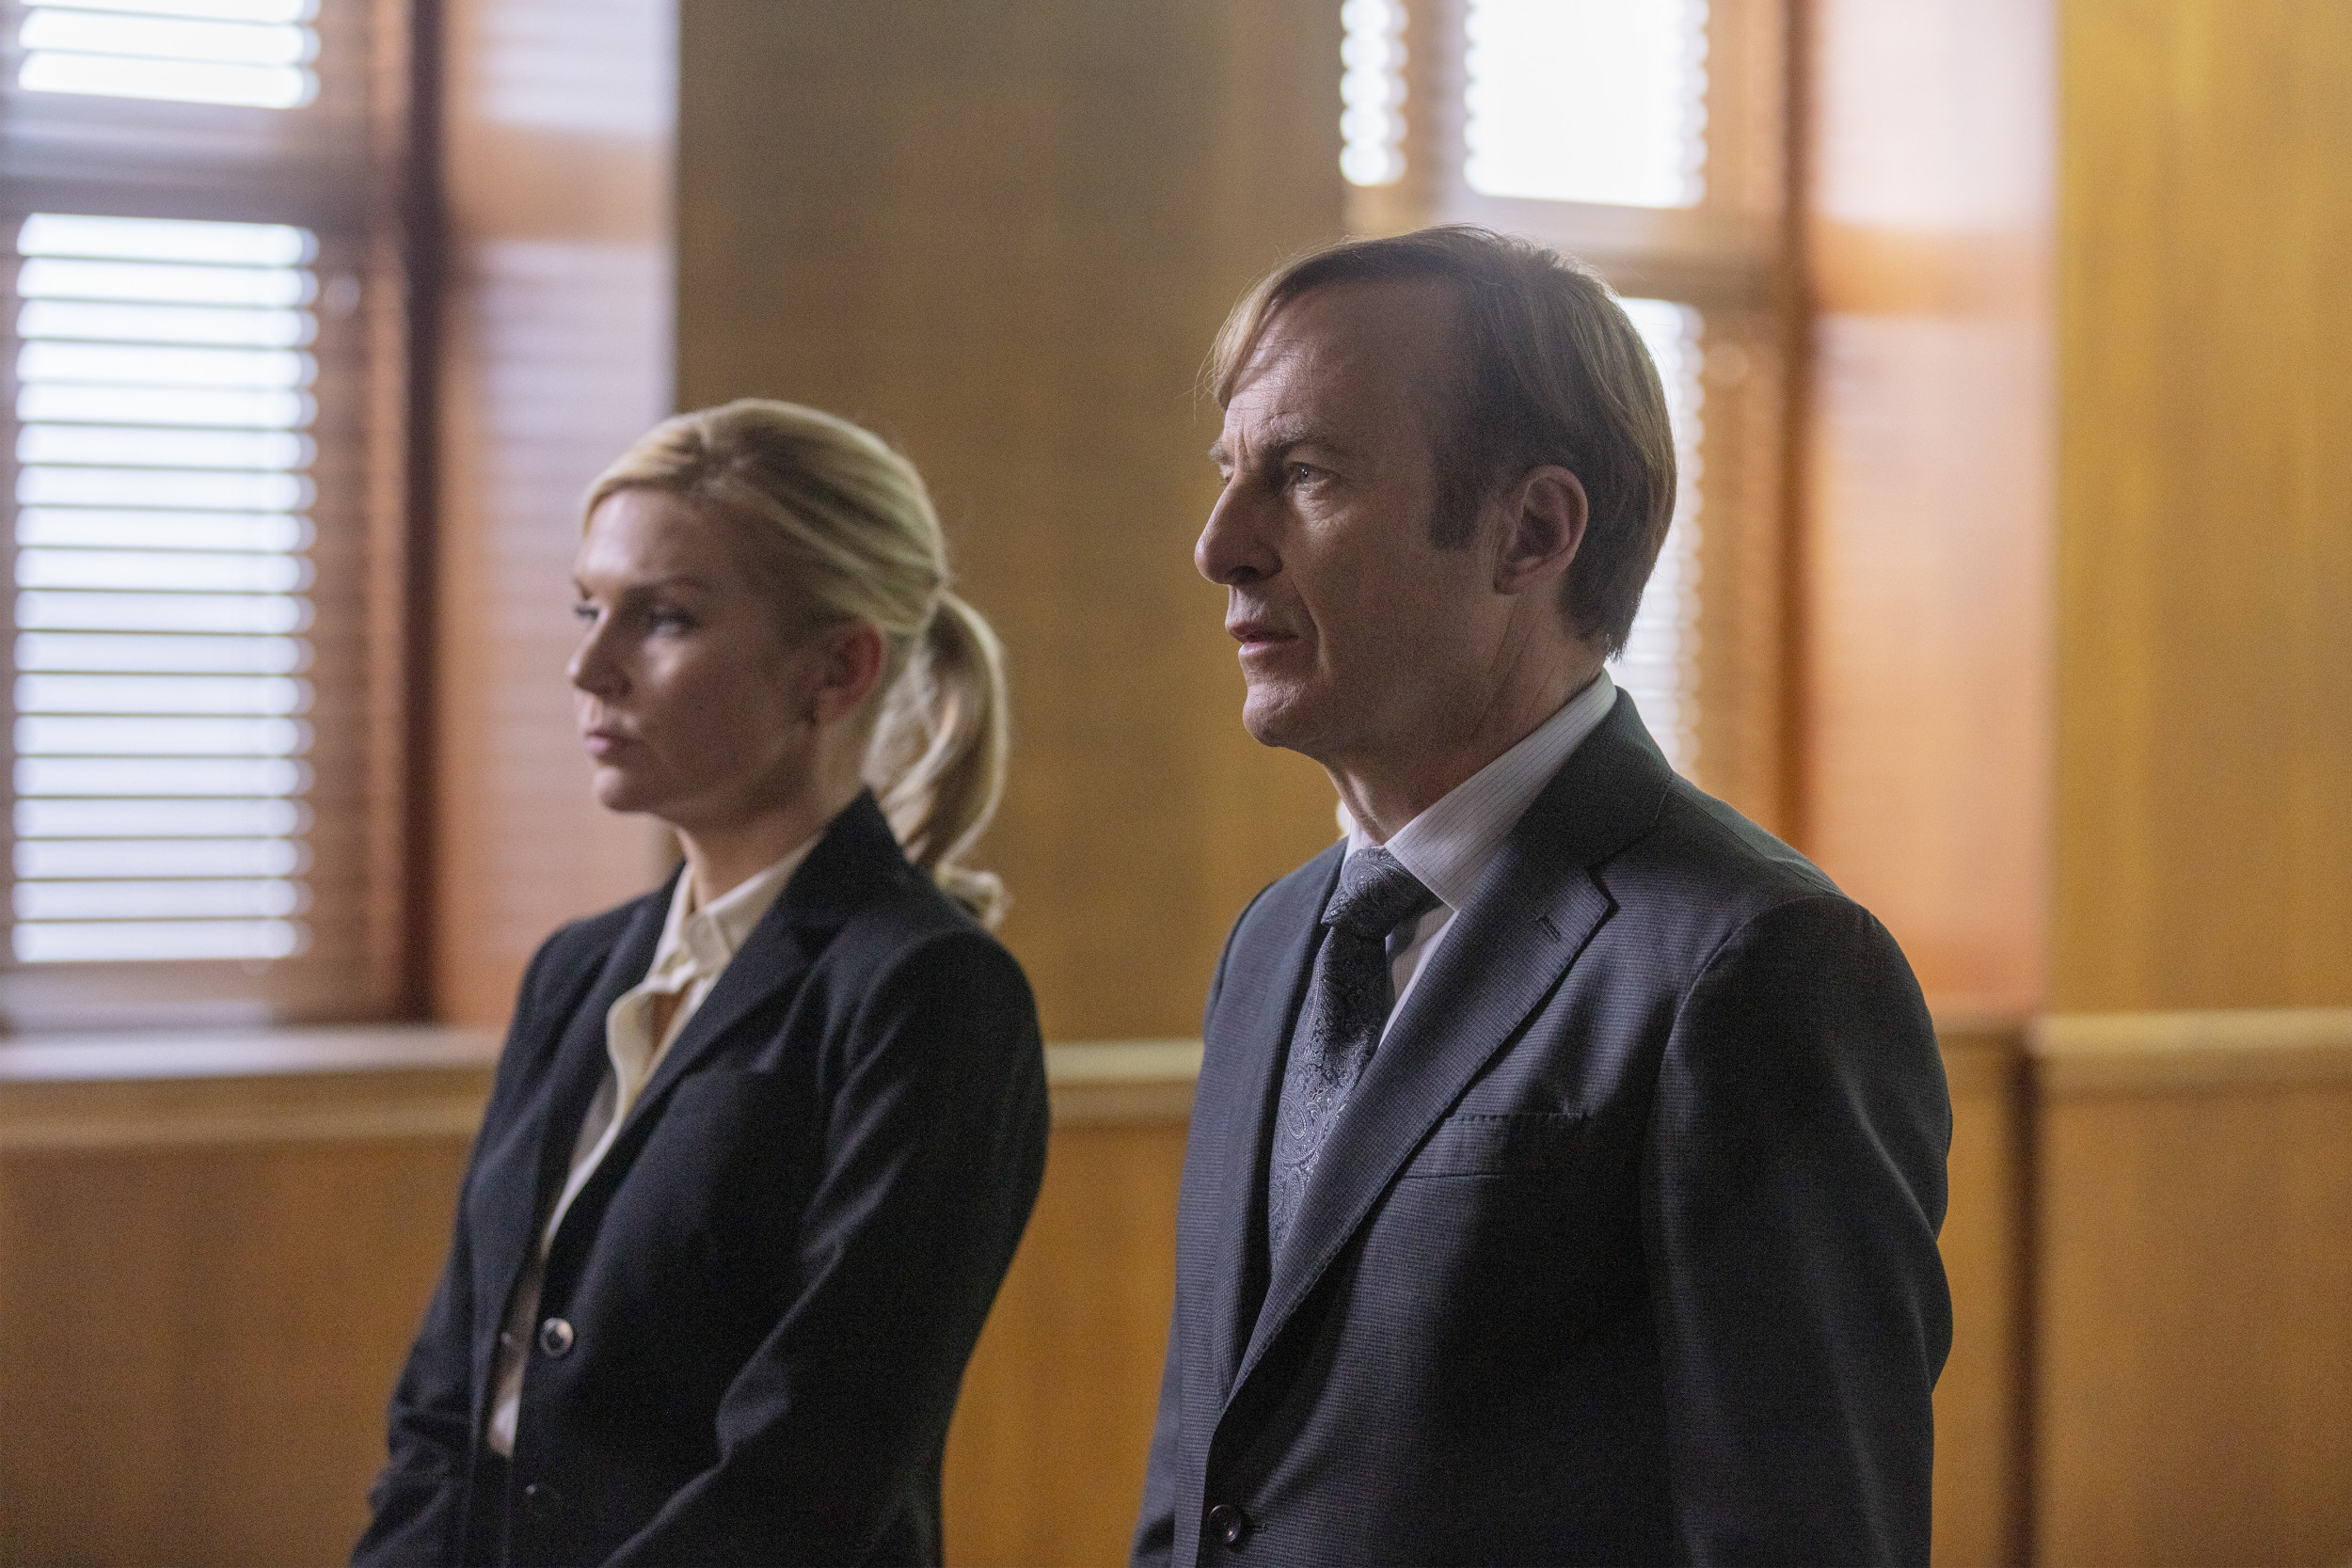 'Better Call Saul' fans are upset that the Emmys snubbed star Rhea Seehorn (again)